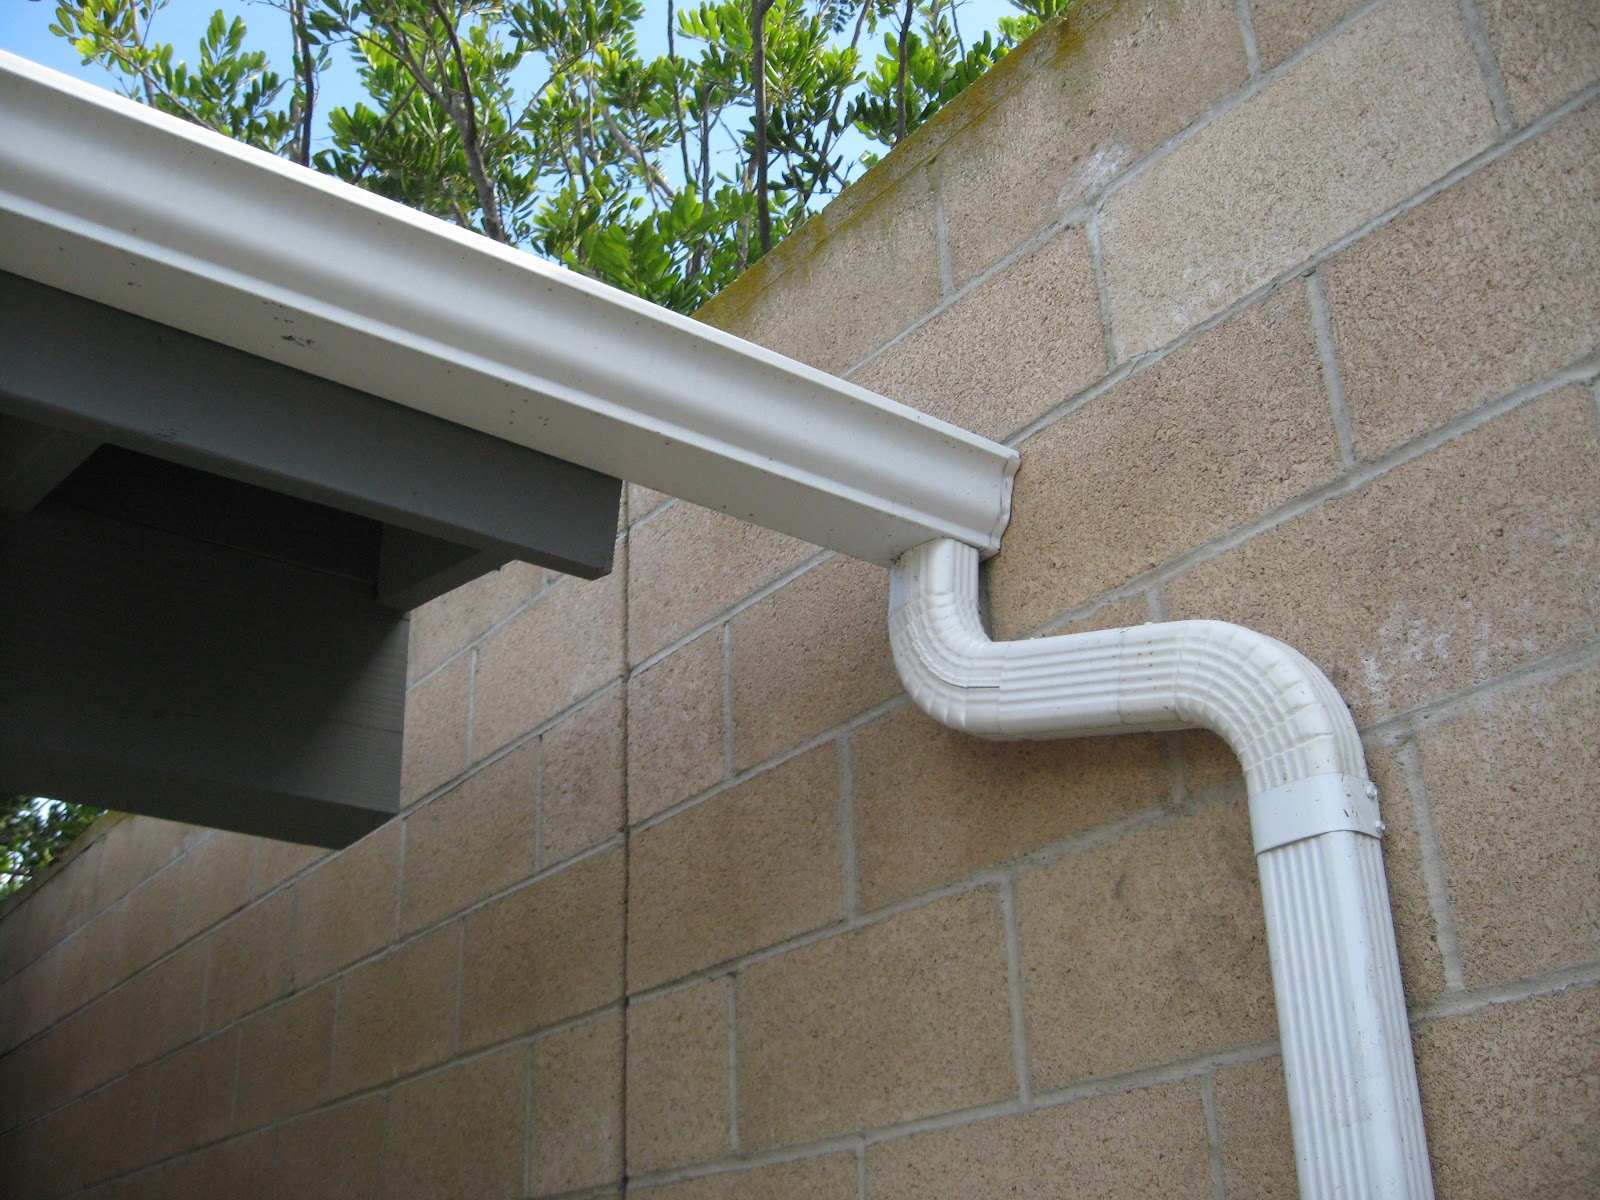 How to install a downspout in a gutter - Harvesting Rain Gutters Downspouts And Rain Chains